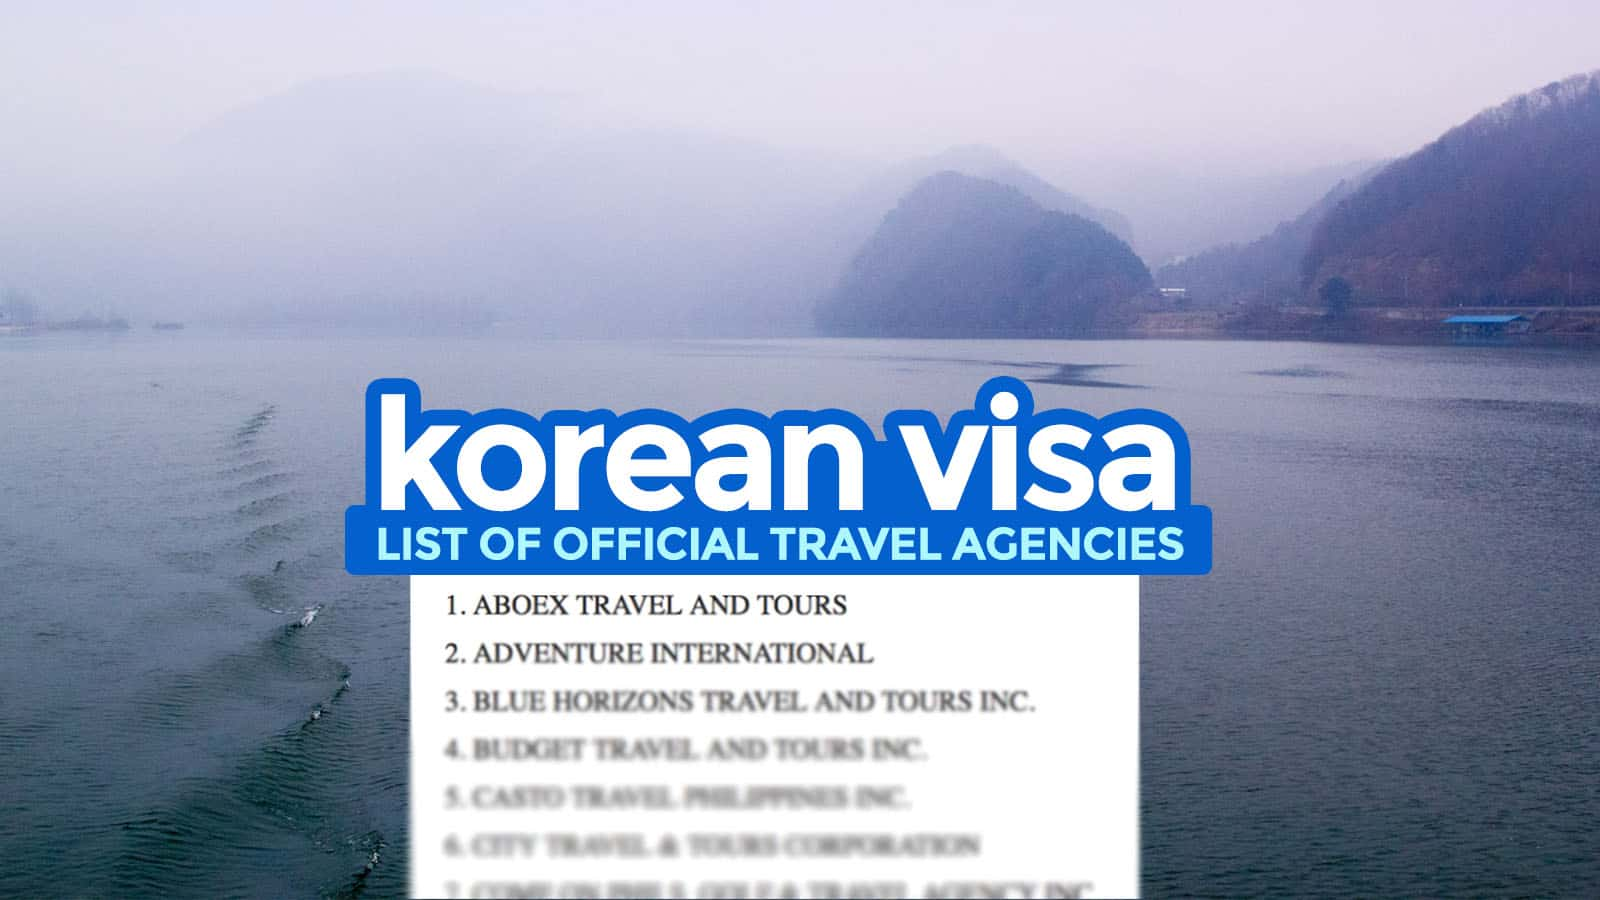 KOREAN VISA: LIST OF TRAVEL AGENCIES Accredited by the Embassy